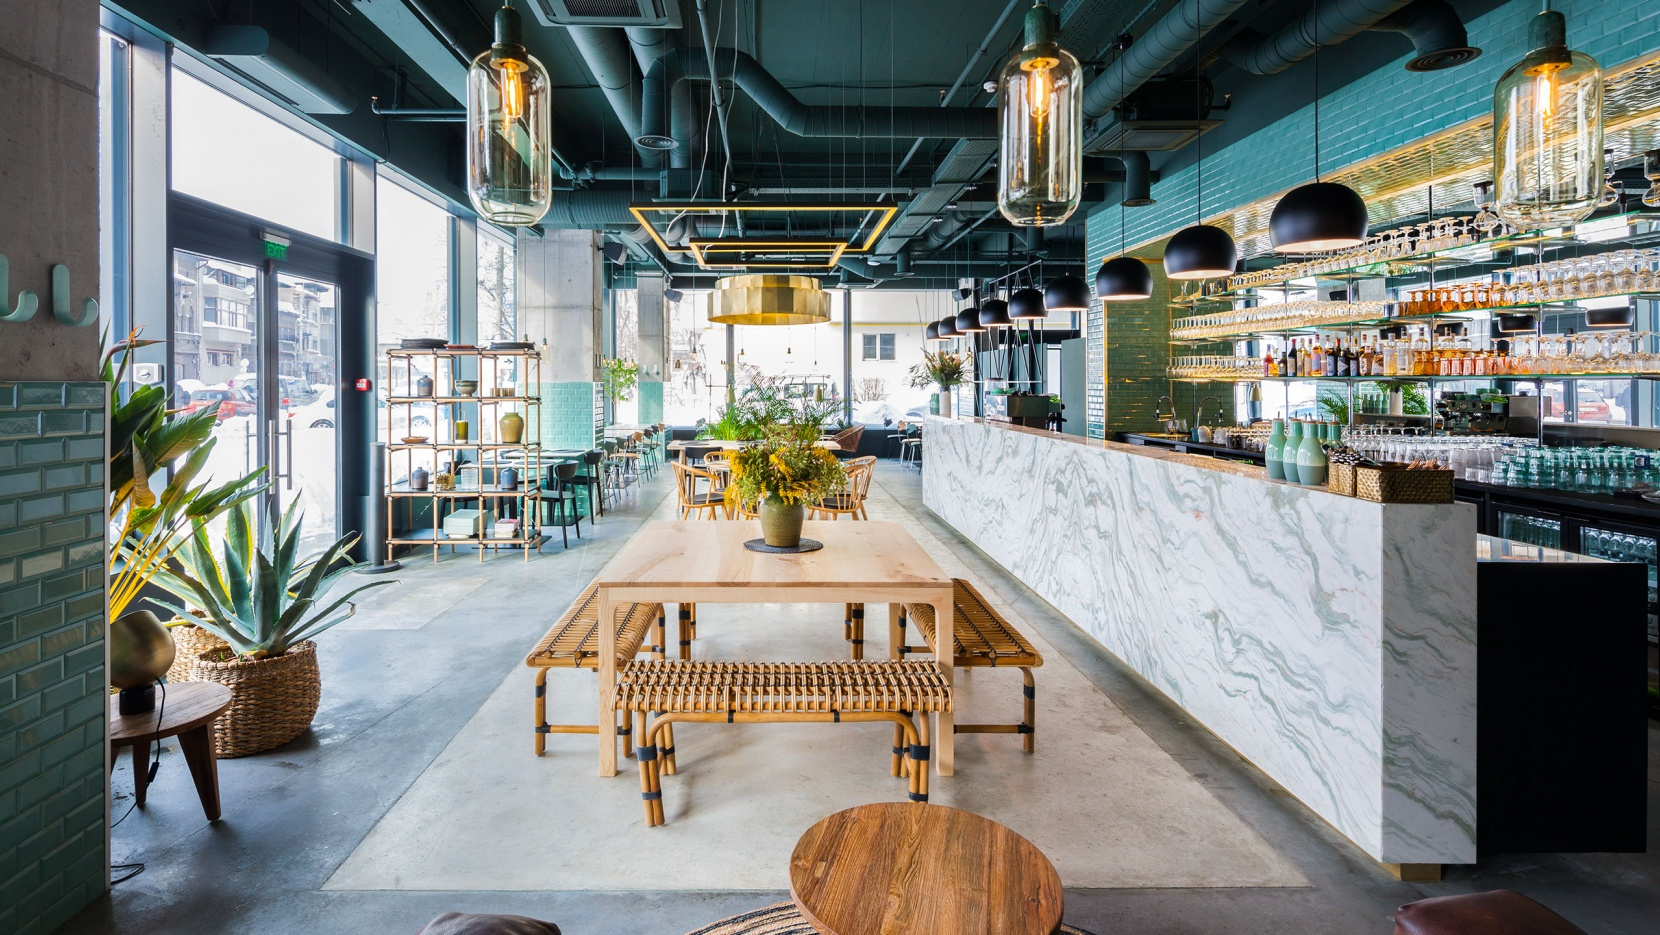 Industrial Style Industrial Style Restaurant With A Greenery Themed Decor